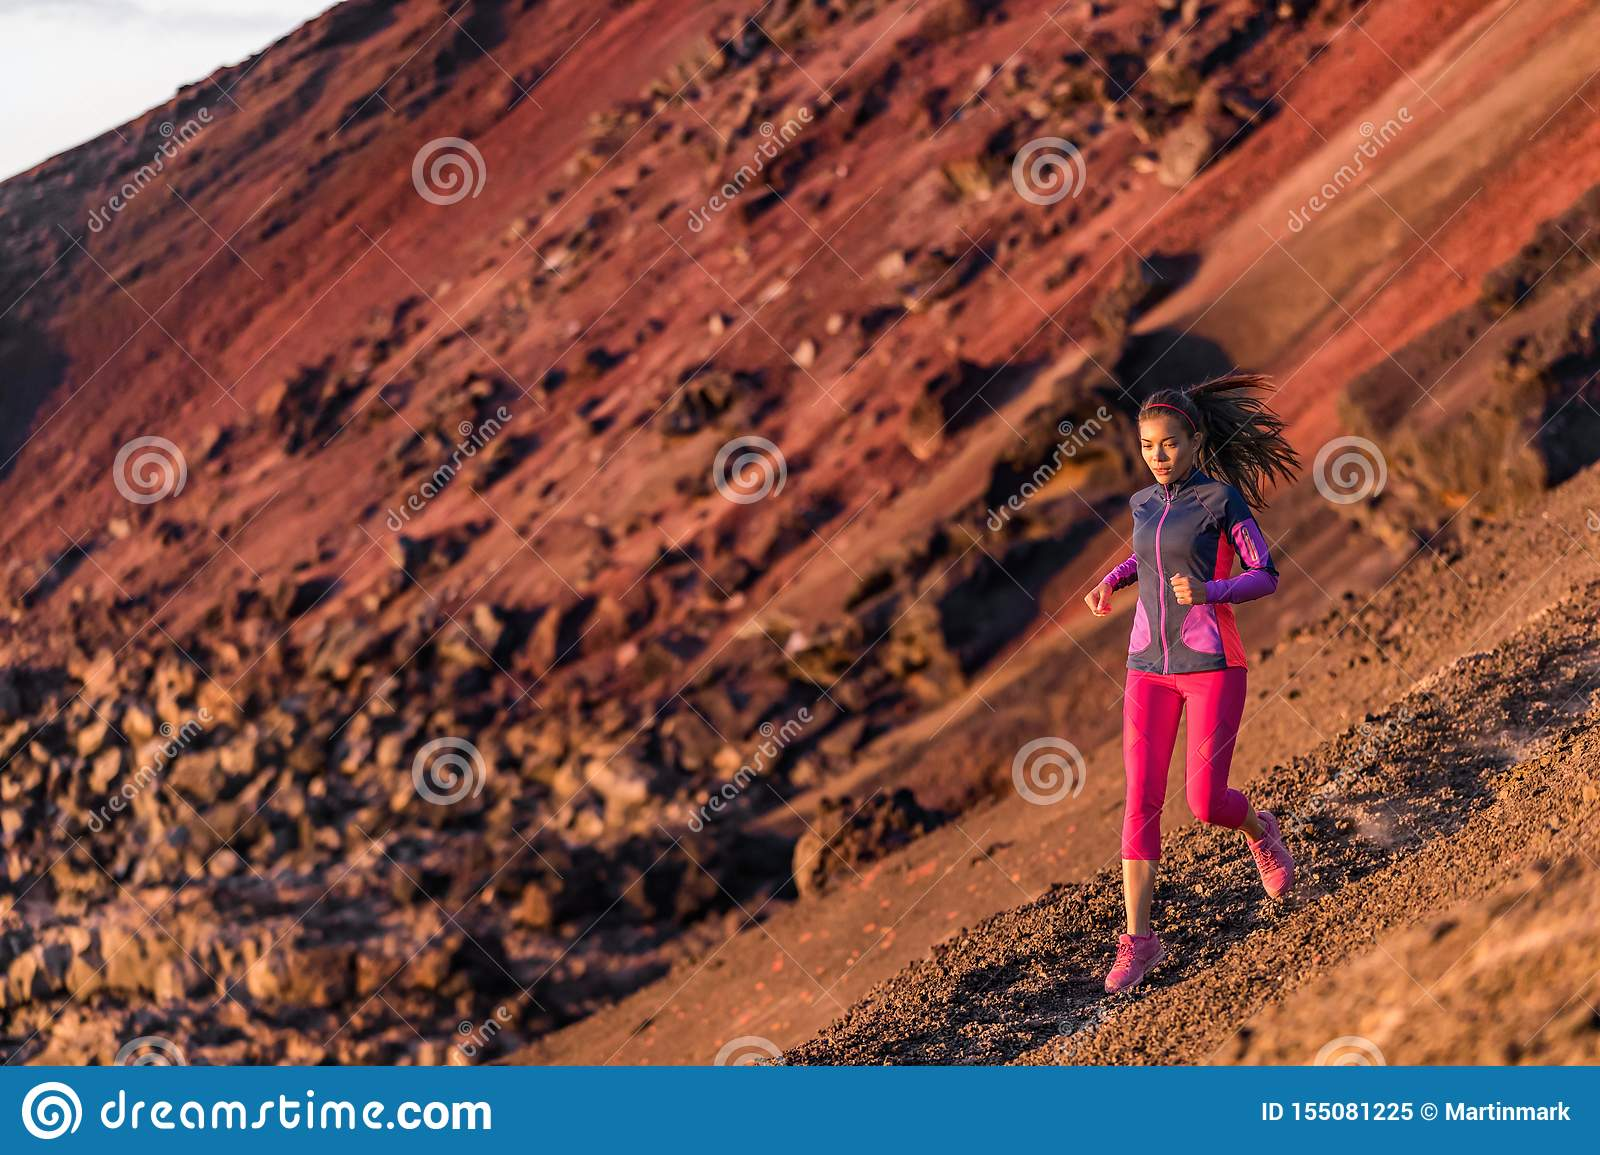 Runner athlete running on mountain trail. Young woman ultra run athlete running fitness workout. Healthy and active lifestyle,